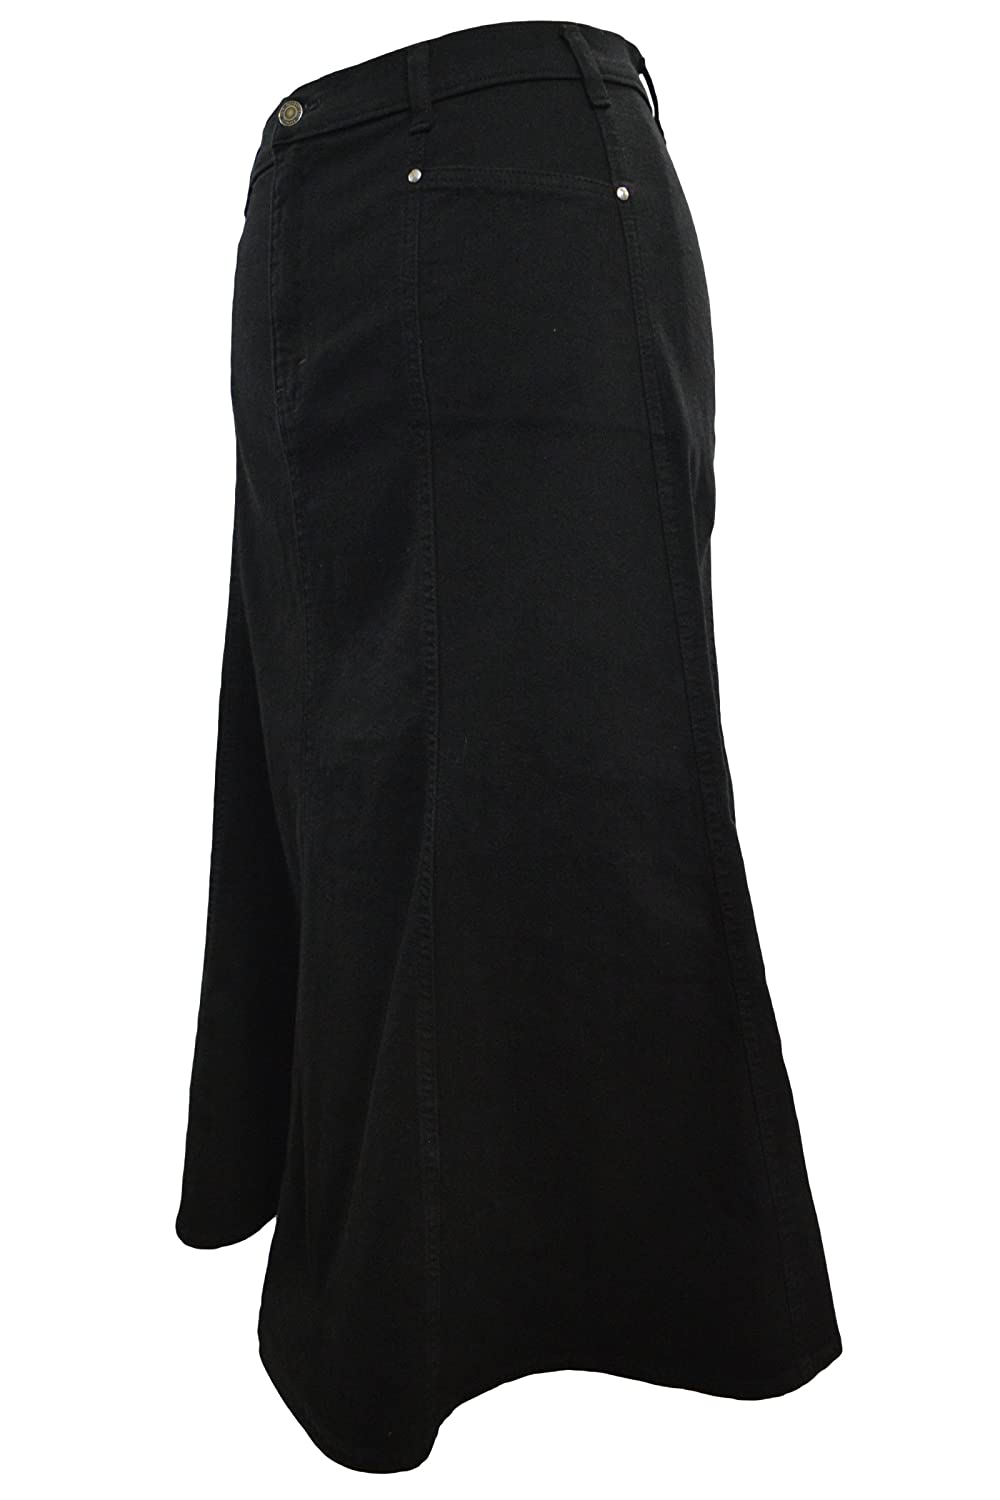 Ladies Long Flared Black Stretch Denim Skirt - Sizes 10 to 22, in 30 & 35 Lengths